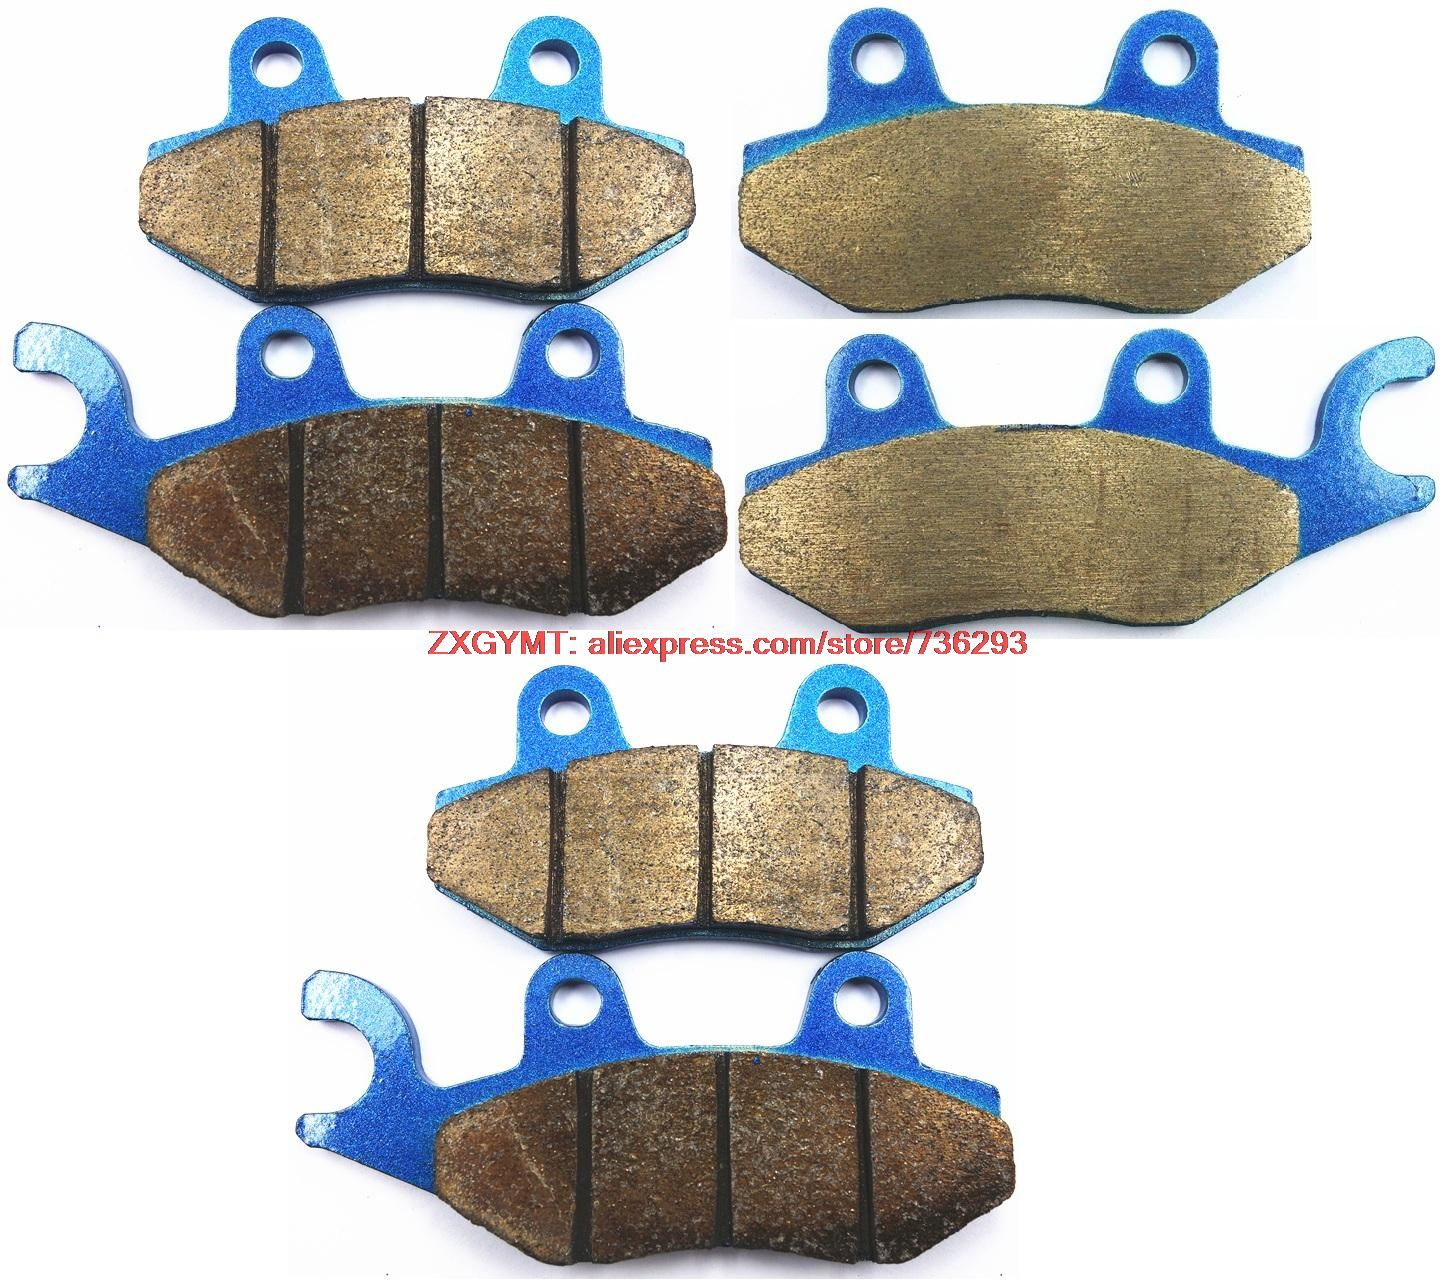 Sintering Motorcycle Brake Shoe Pads Set fit CAN-AM 1000 Commander 2011 & up